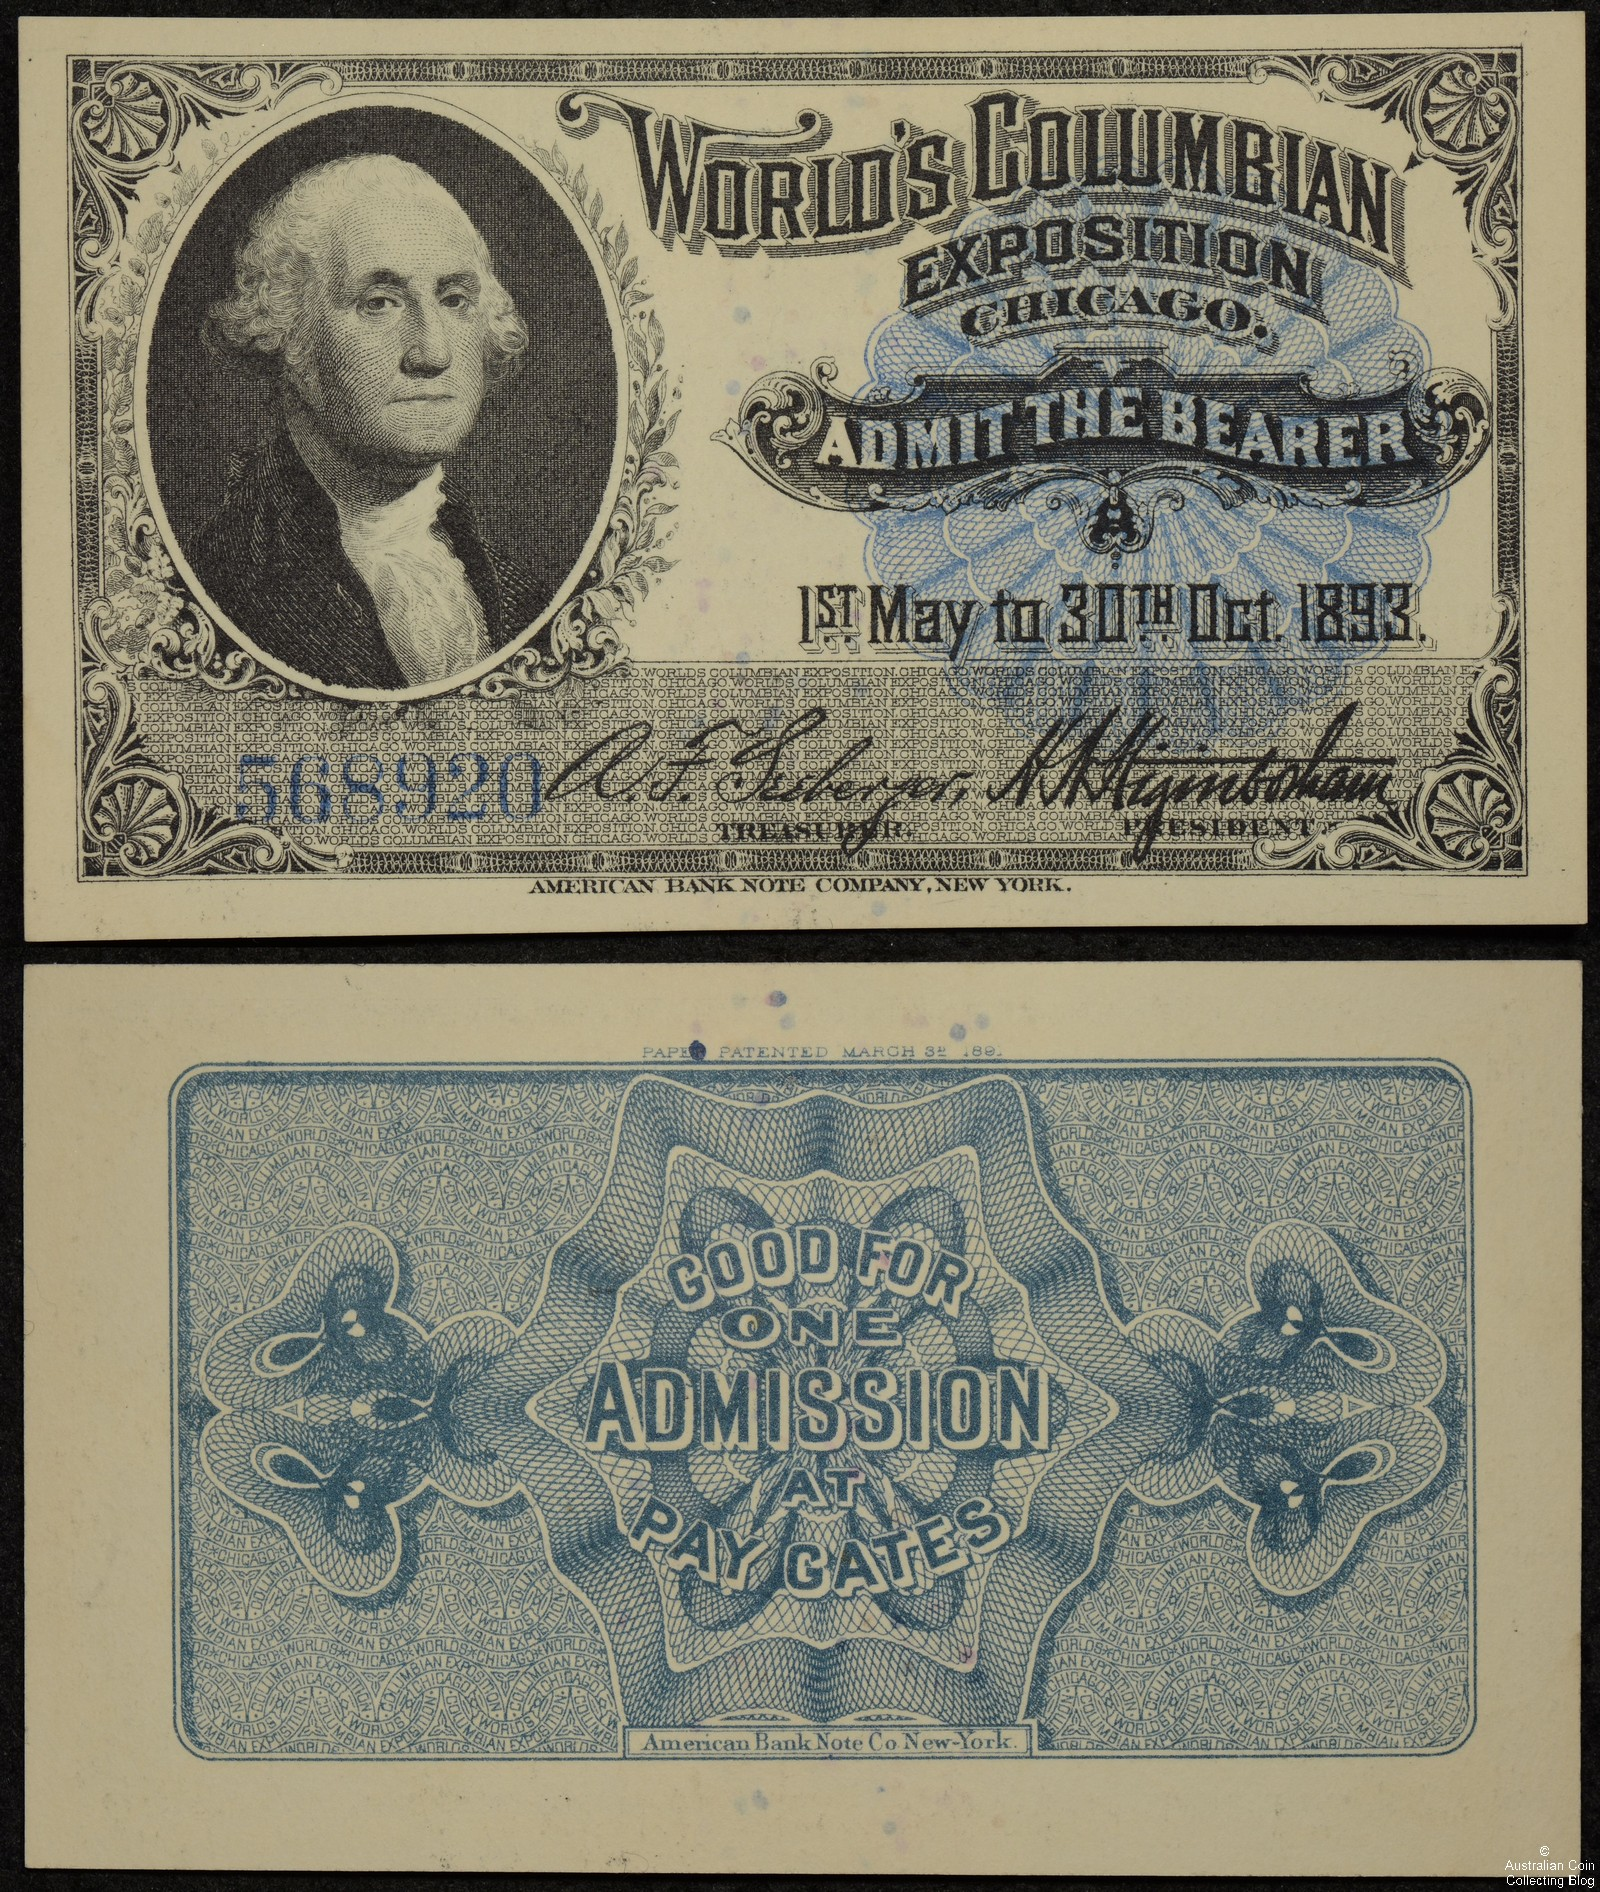 1893 World's Columbian Exposition Ticket – Washington Souvenir Portrait